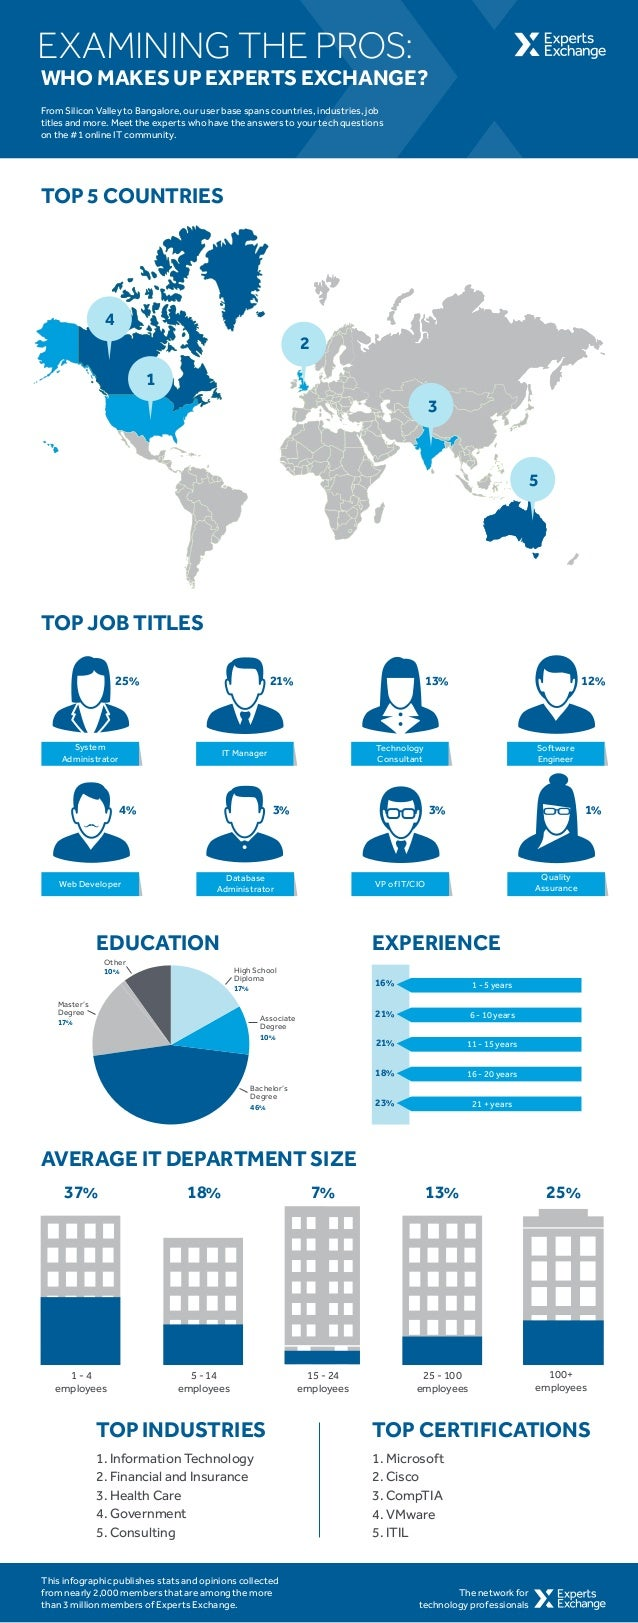 TOP 5 COUNTRIES TOP JOB TITLES EXPERIENCE AVERAGE IT DEPARTMENT SIZE 1 3 2 4 5 1 - 4 employees 5 - 14 employees 37% 18% 7%...